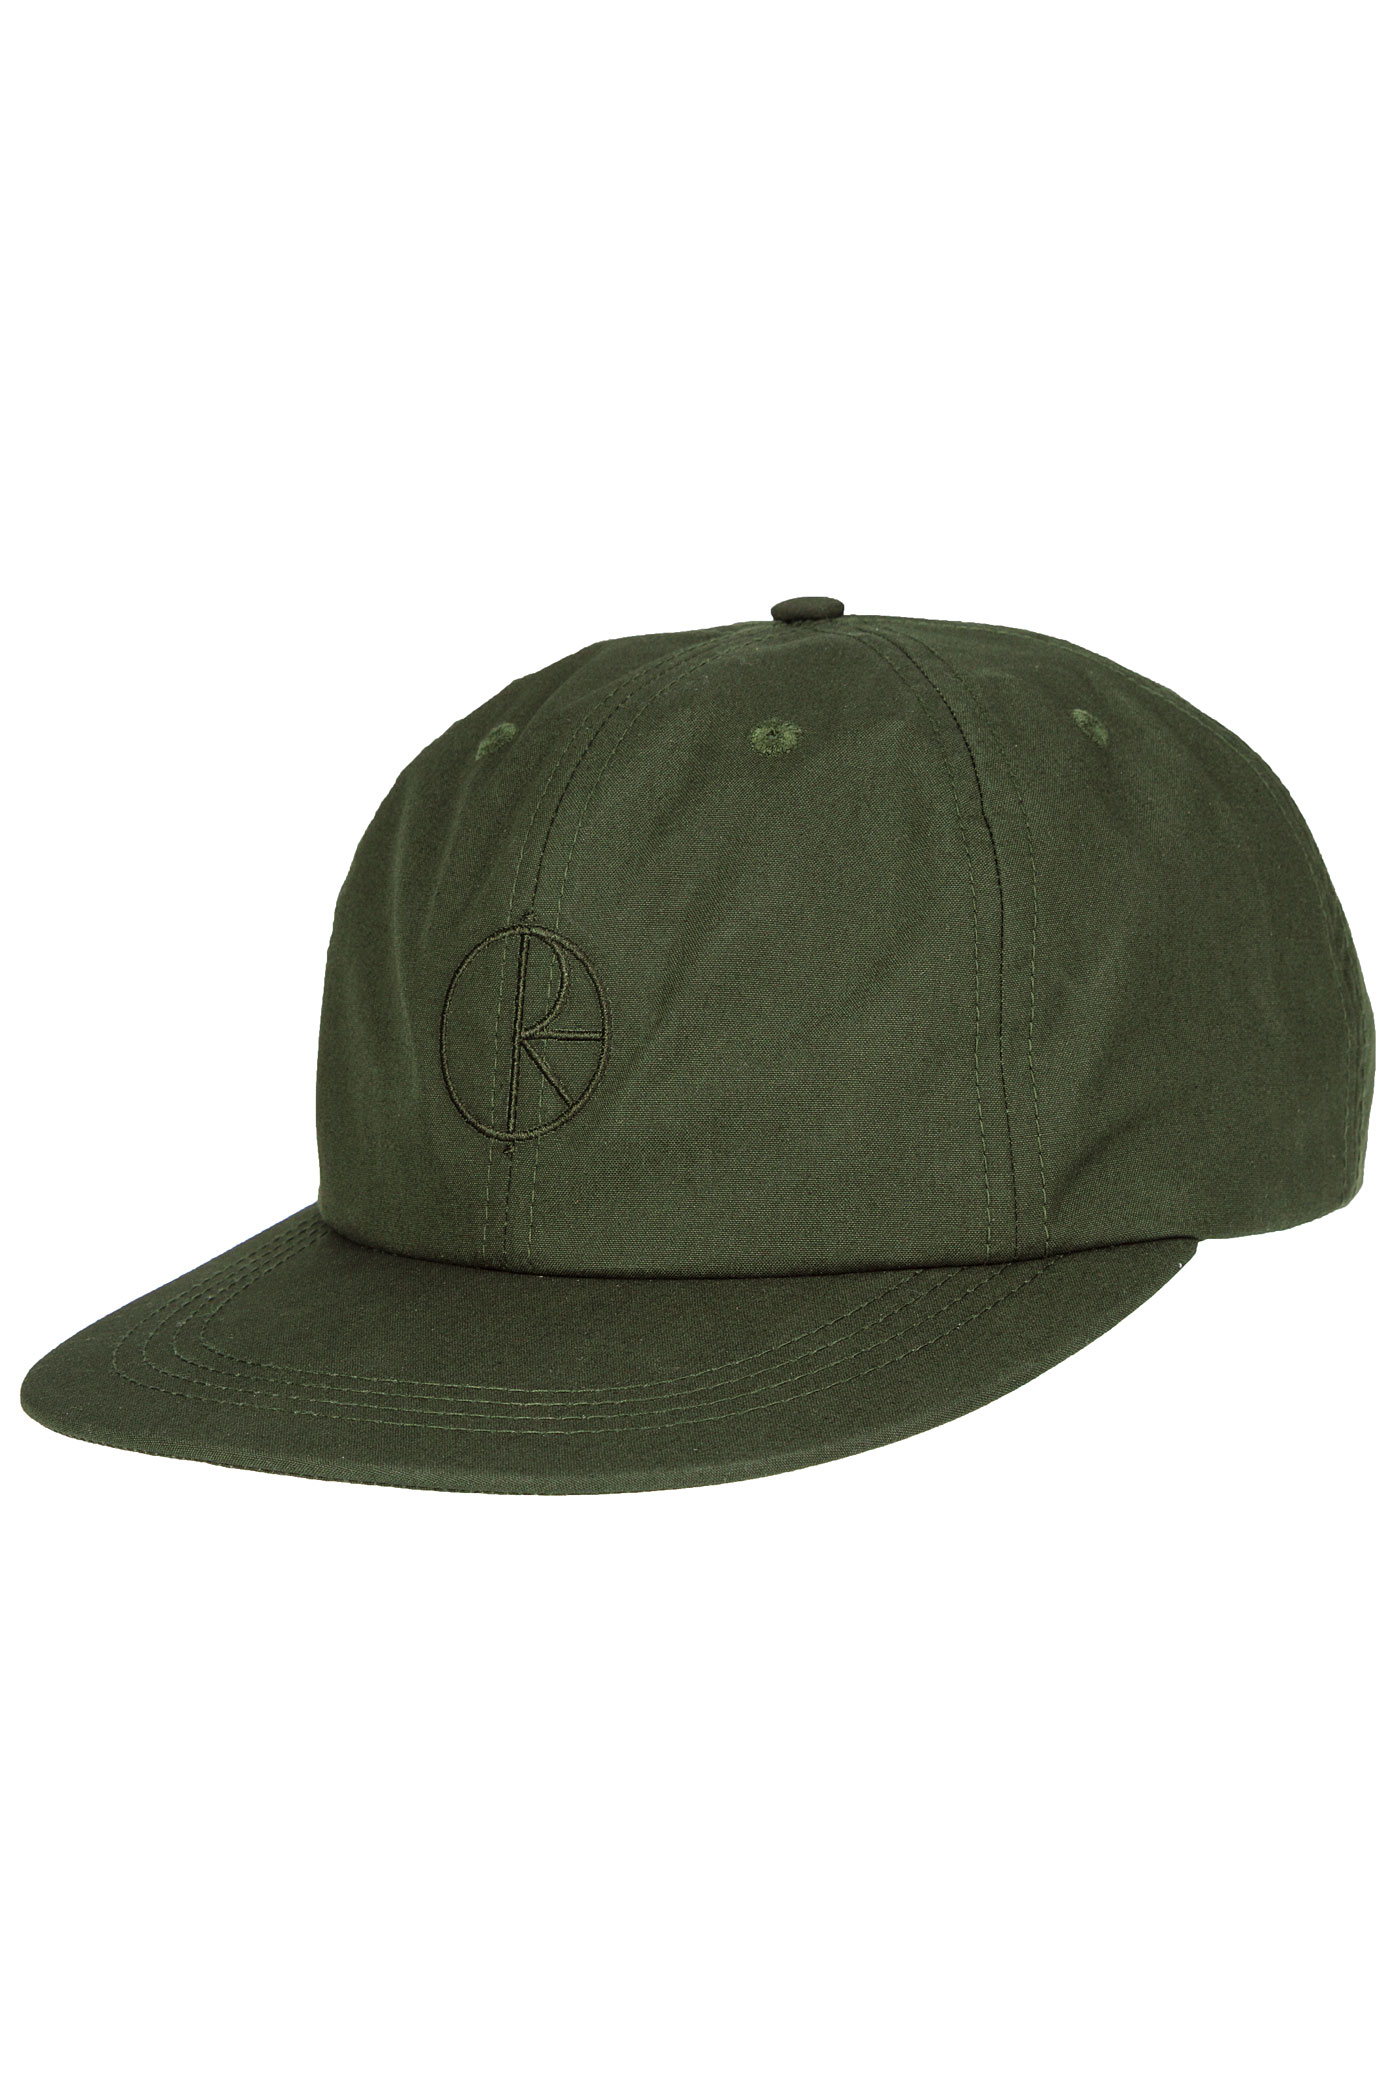 26151ff3047 Polar Skateboards Waxed Cotton 6 Panel Unstructured Cap .